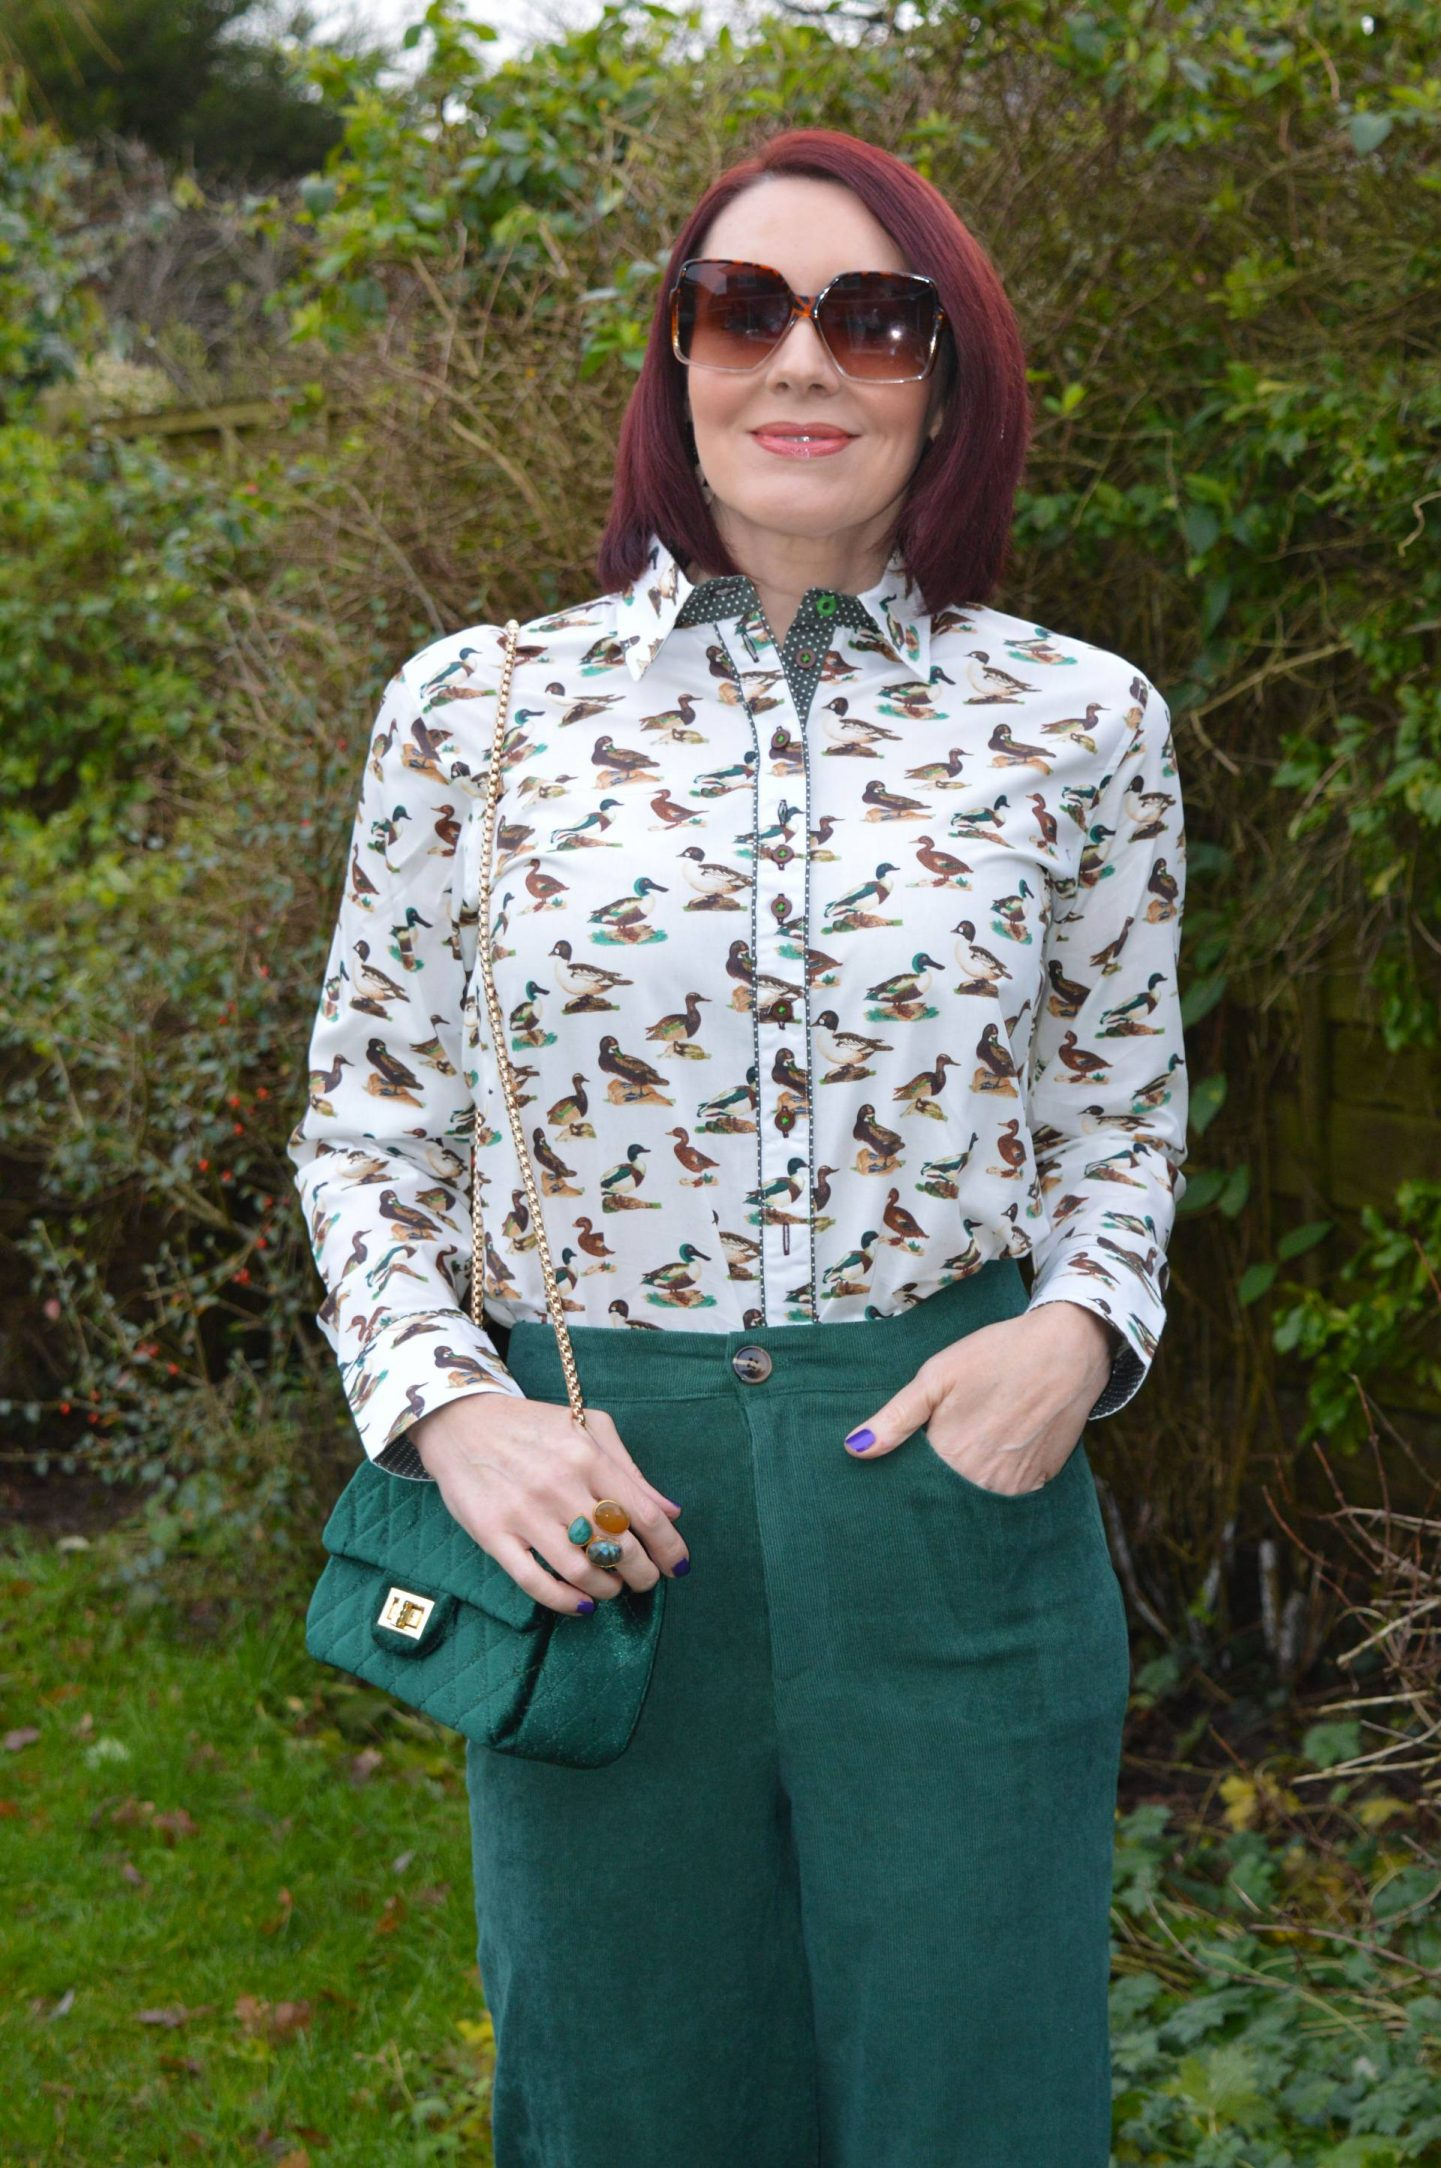 Salamander Shirts Duck Print Cotton Shirt, Coast baby cord forest green trousers, SVNX brown square sunglasses